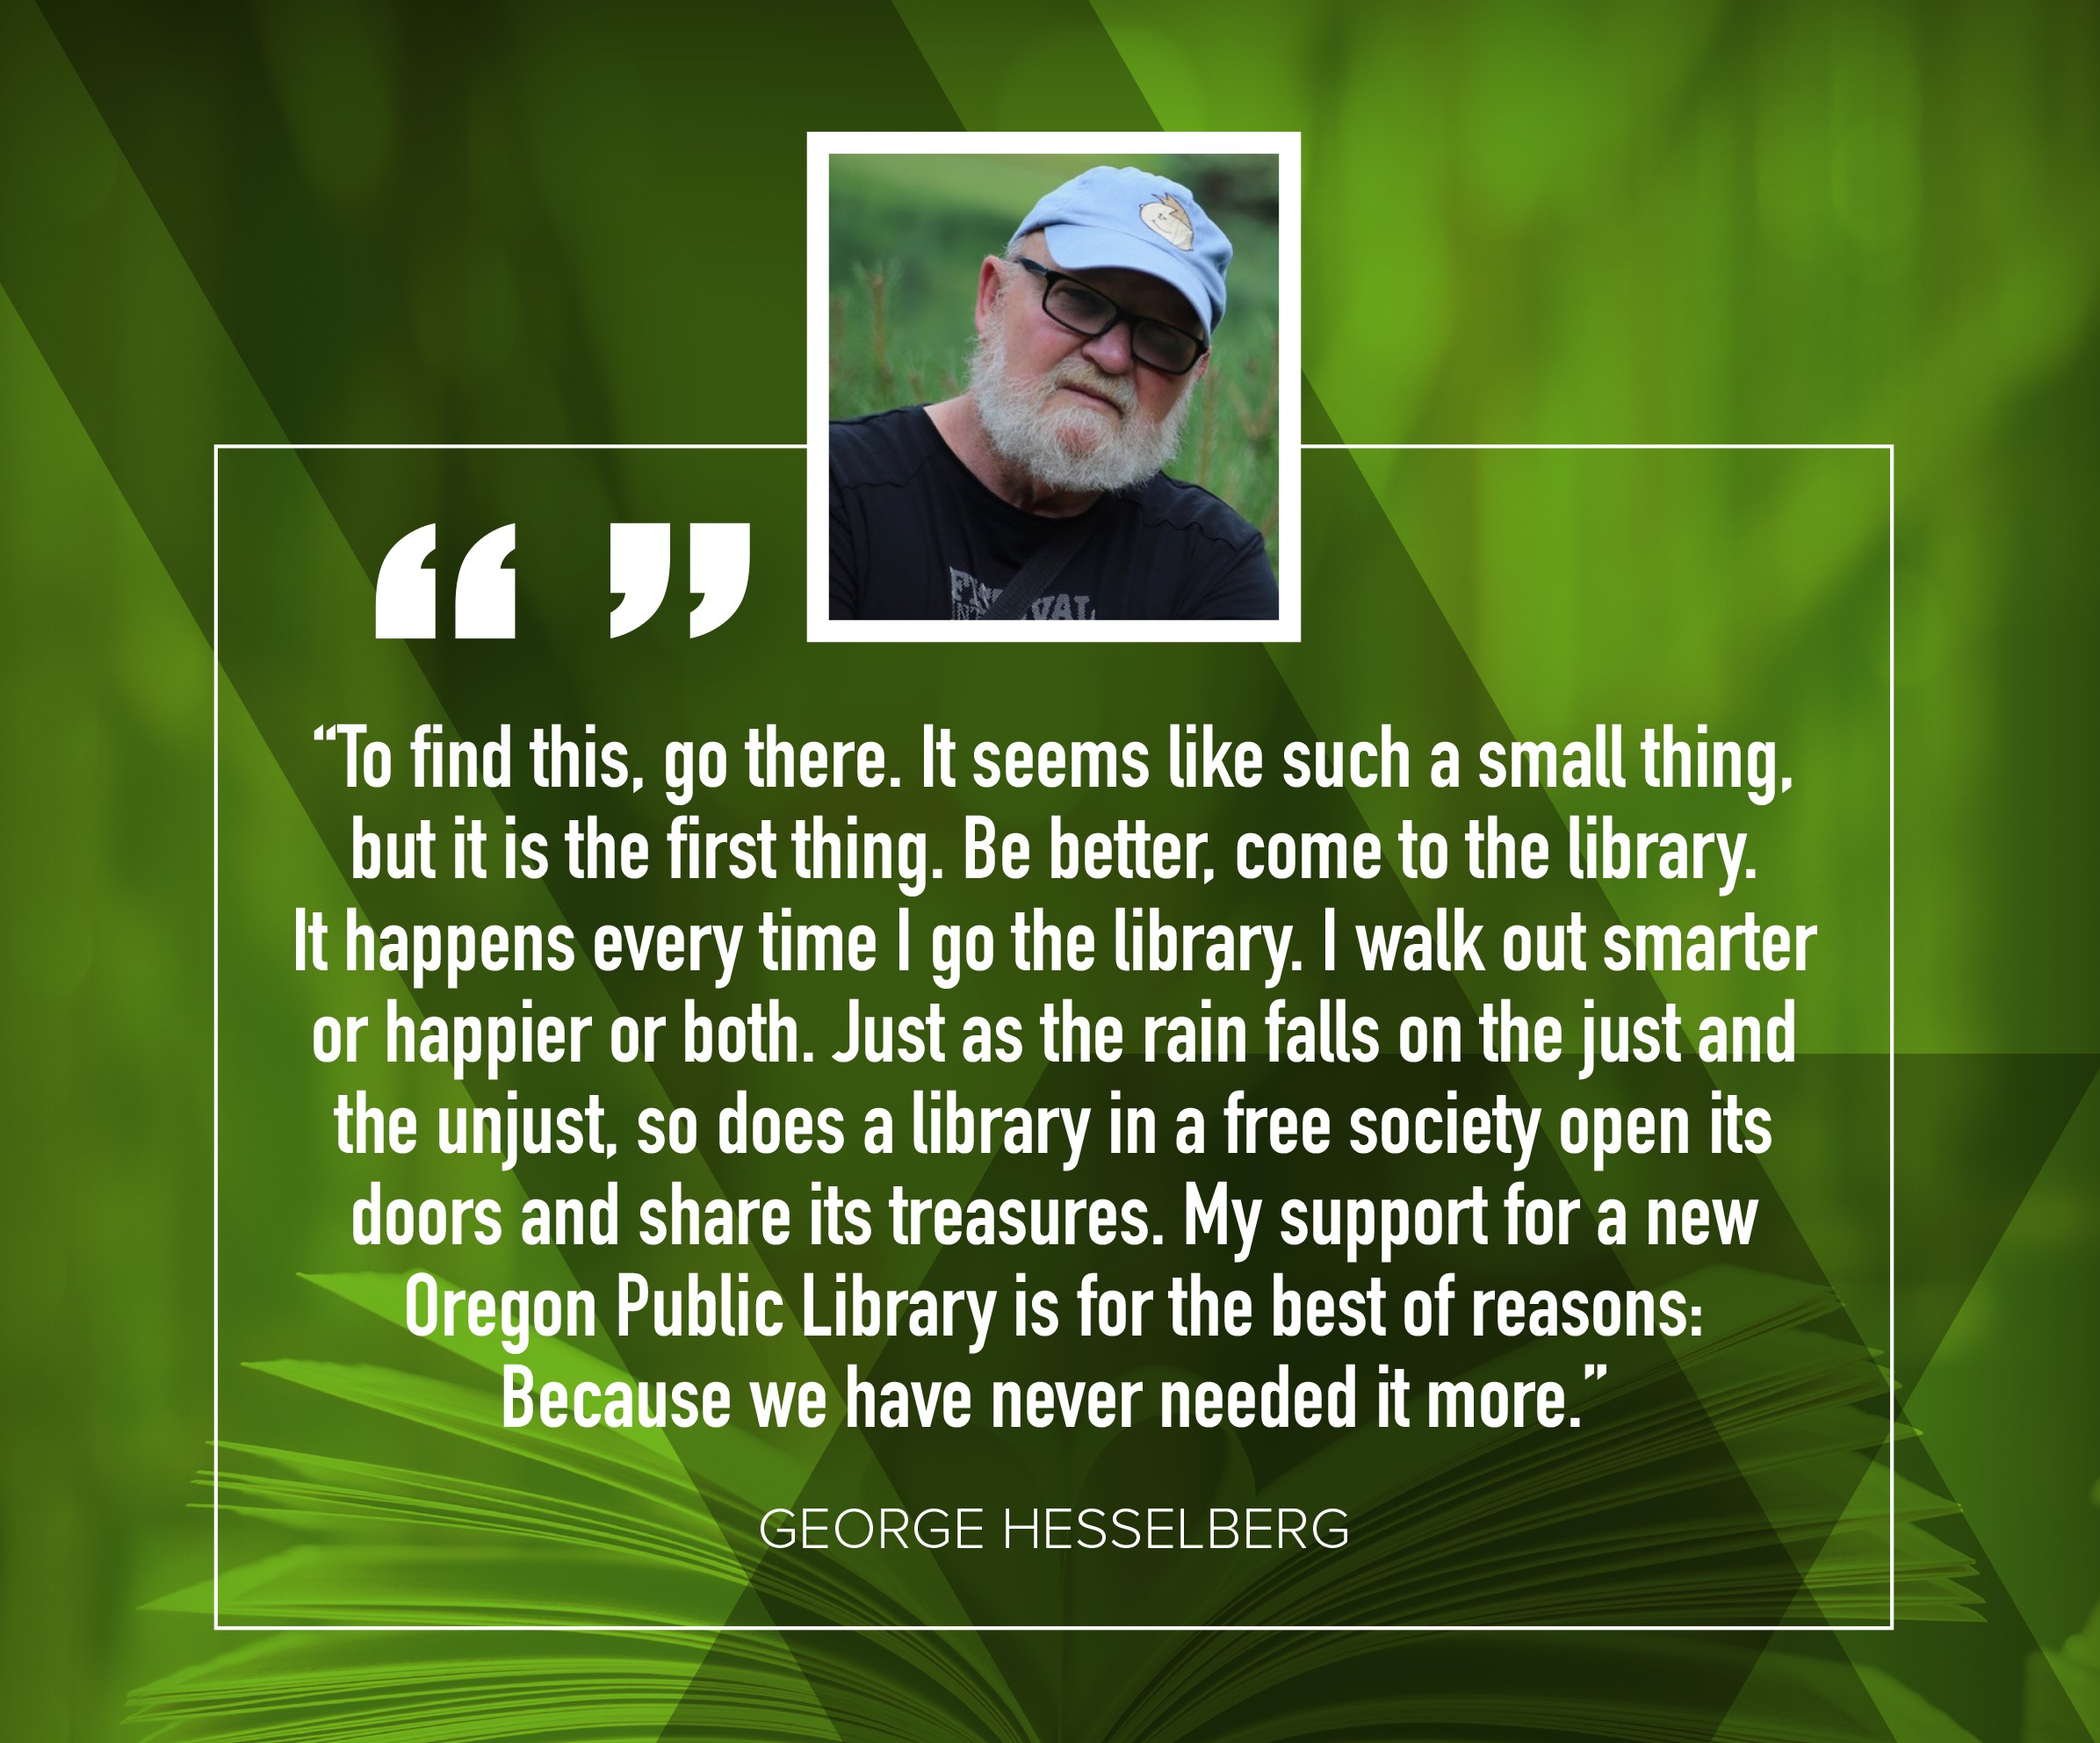 "George Hesselberg ""To find this, go there.  It seems like such a small thing, but it is the first thing.  Be better, come to the library.  It happens every time I go to the library.  I walk out smarter or happier or both.  Just as the rain falls onthe just and the unjust, so does a library in a free society open its doors and share its treasures.  My support for a new Oregon Public Library is for the best of reasons: Because we have never needed it more."""